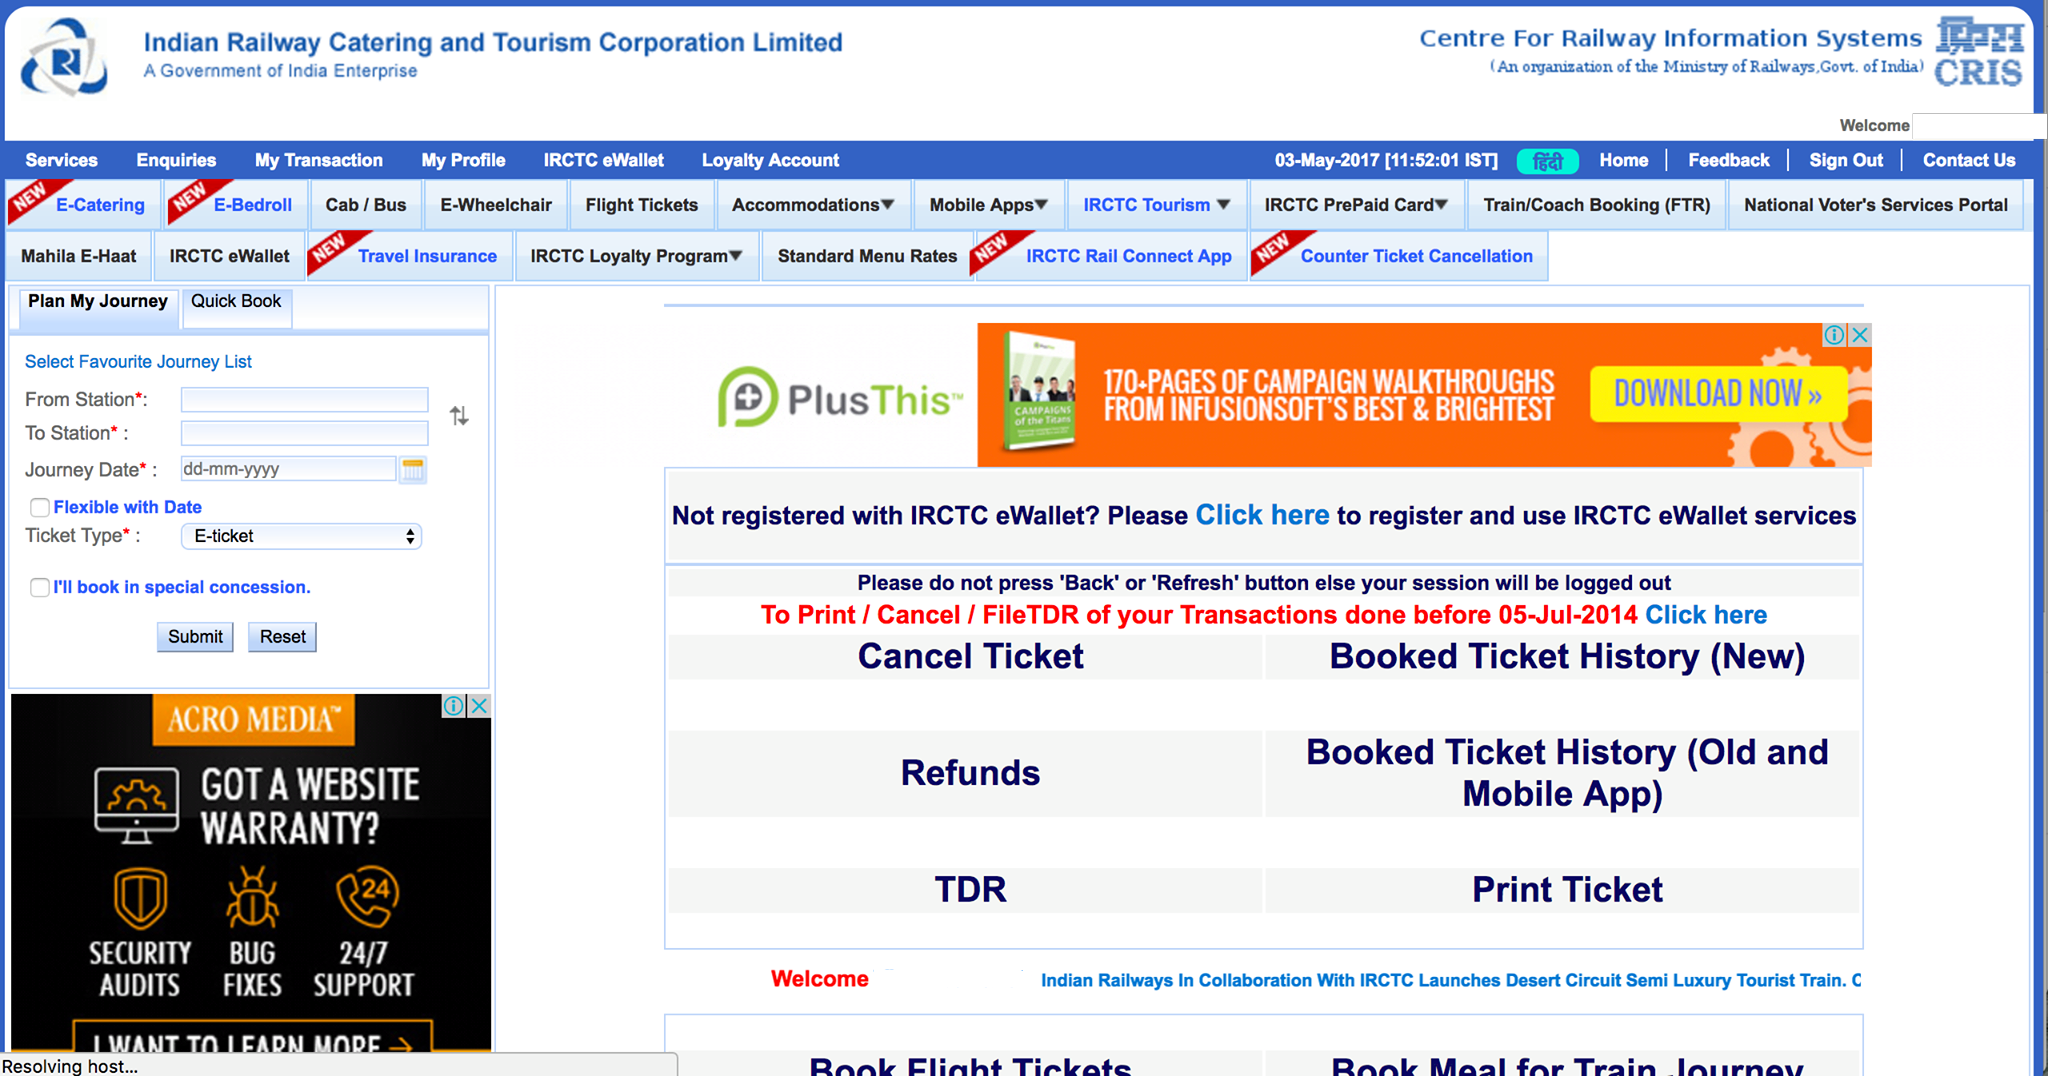 IRCTC Welcome Screen